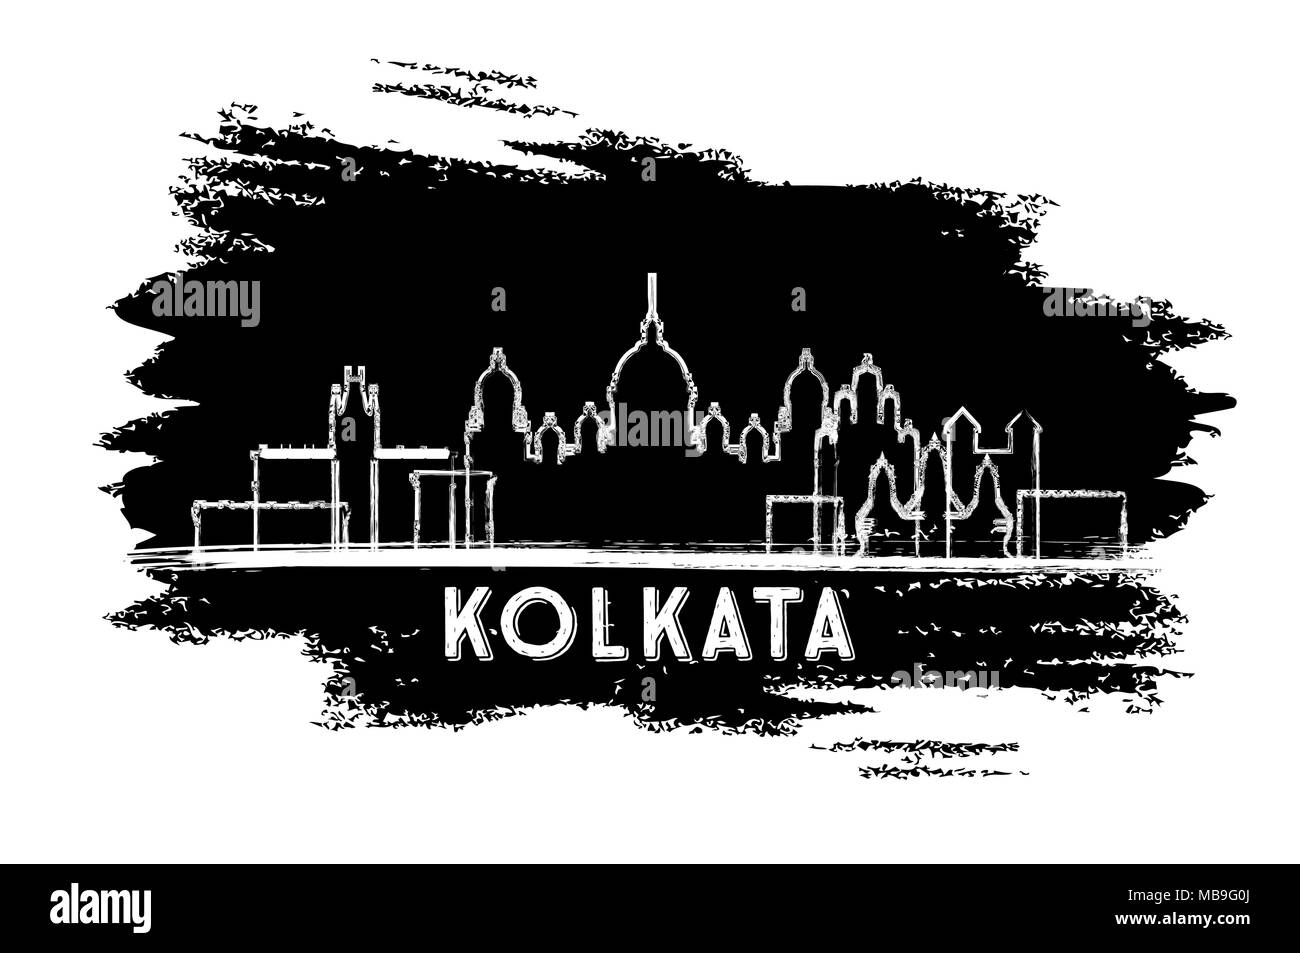 Kolkata India City Skyline Silhouette. Hand Drawn Sketch. Business Travel and Tourism Concept with Historic Architecture. Vector Illustration. Stock Vector